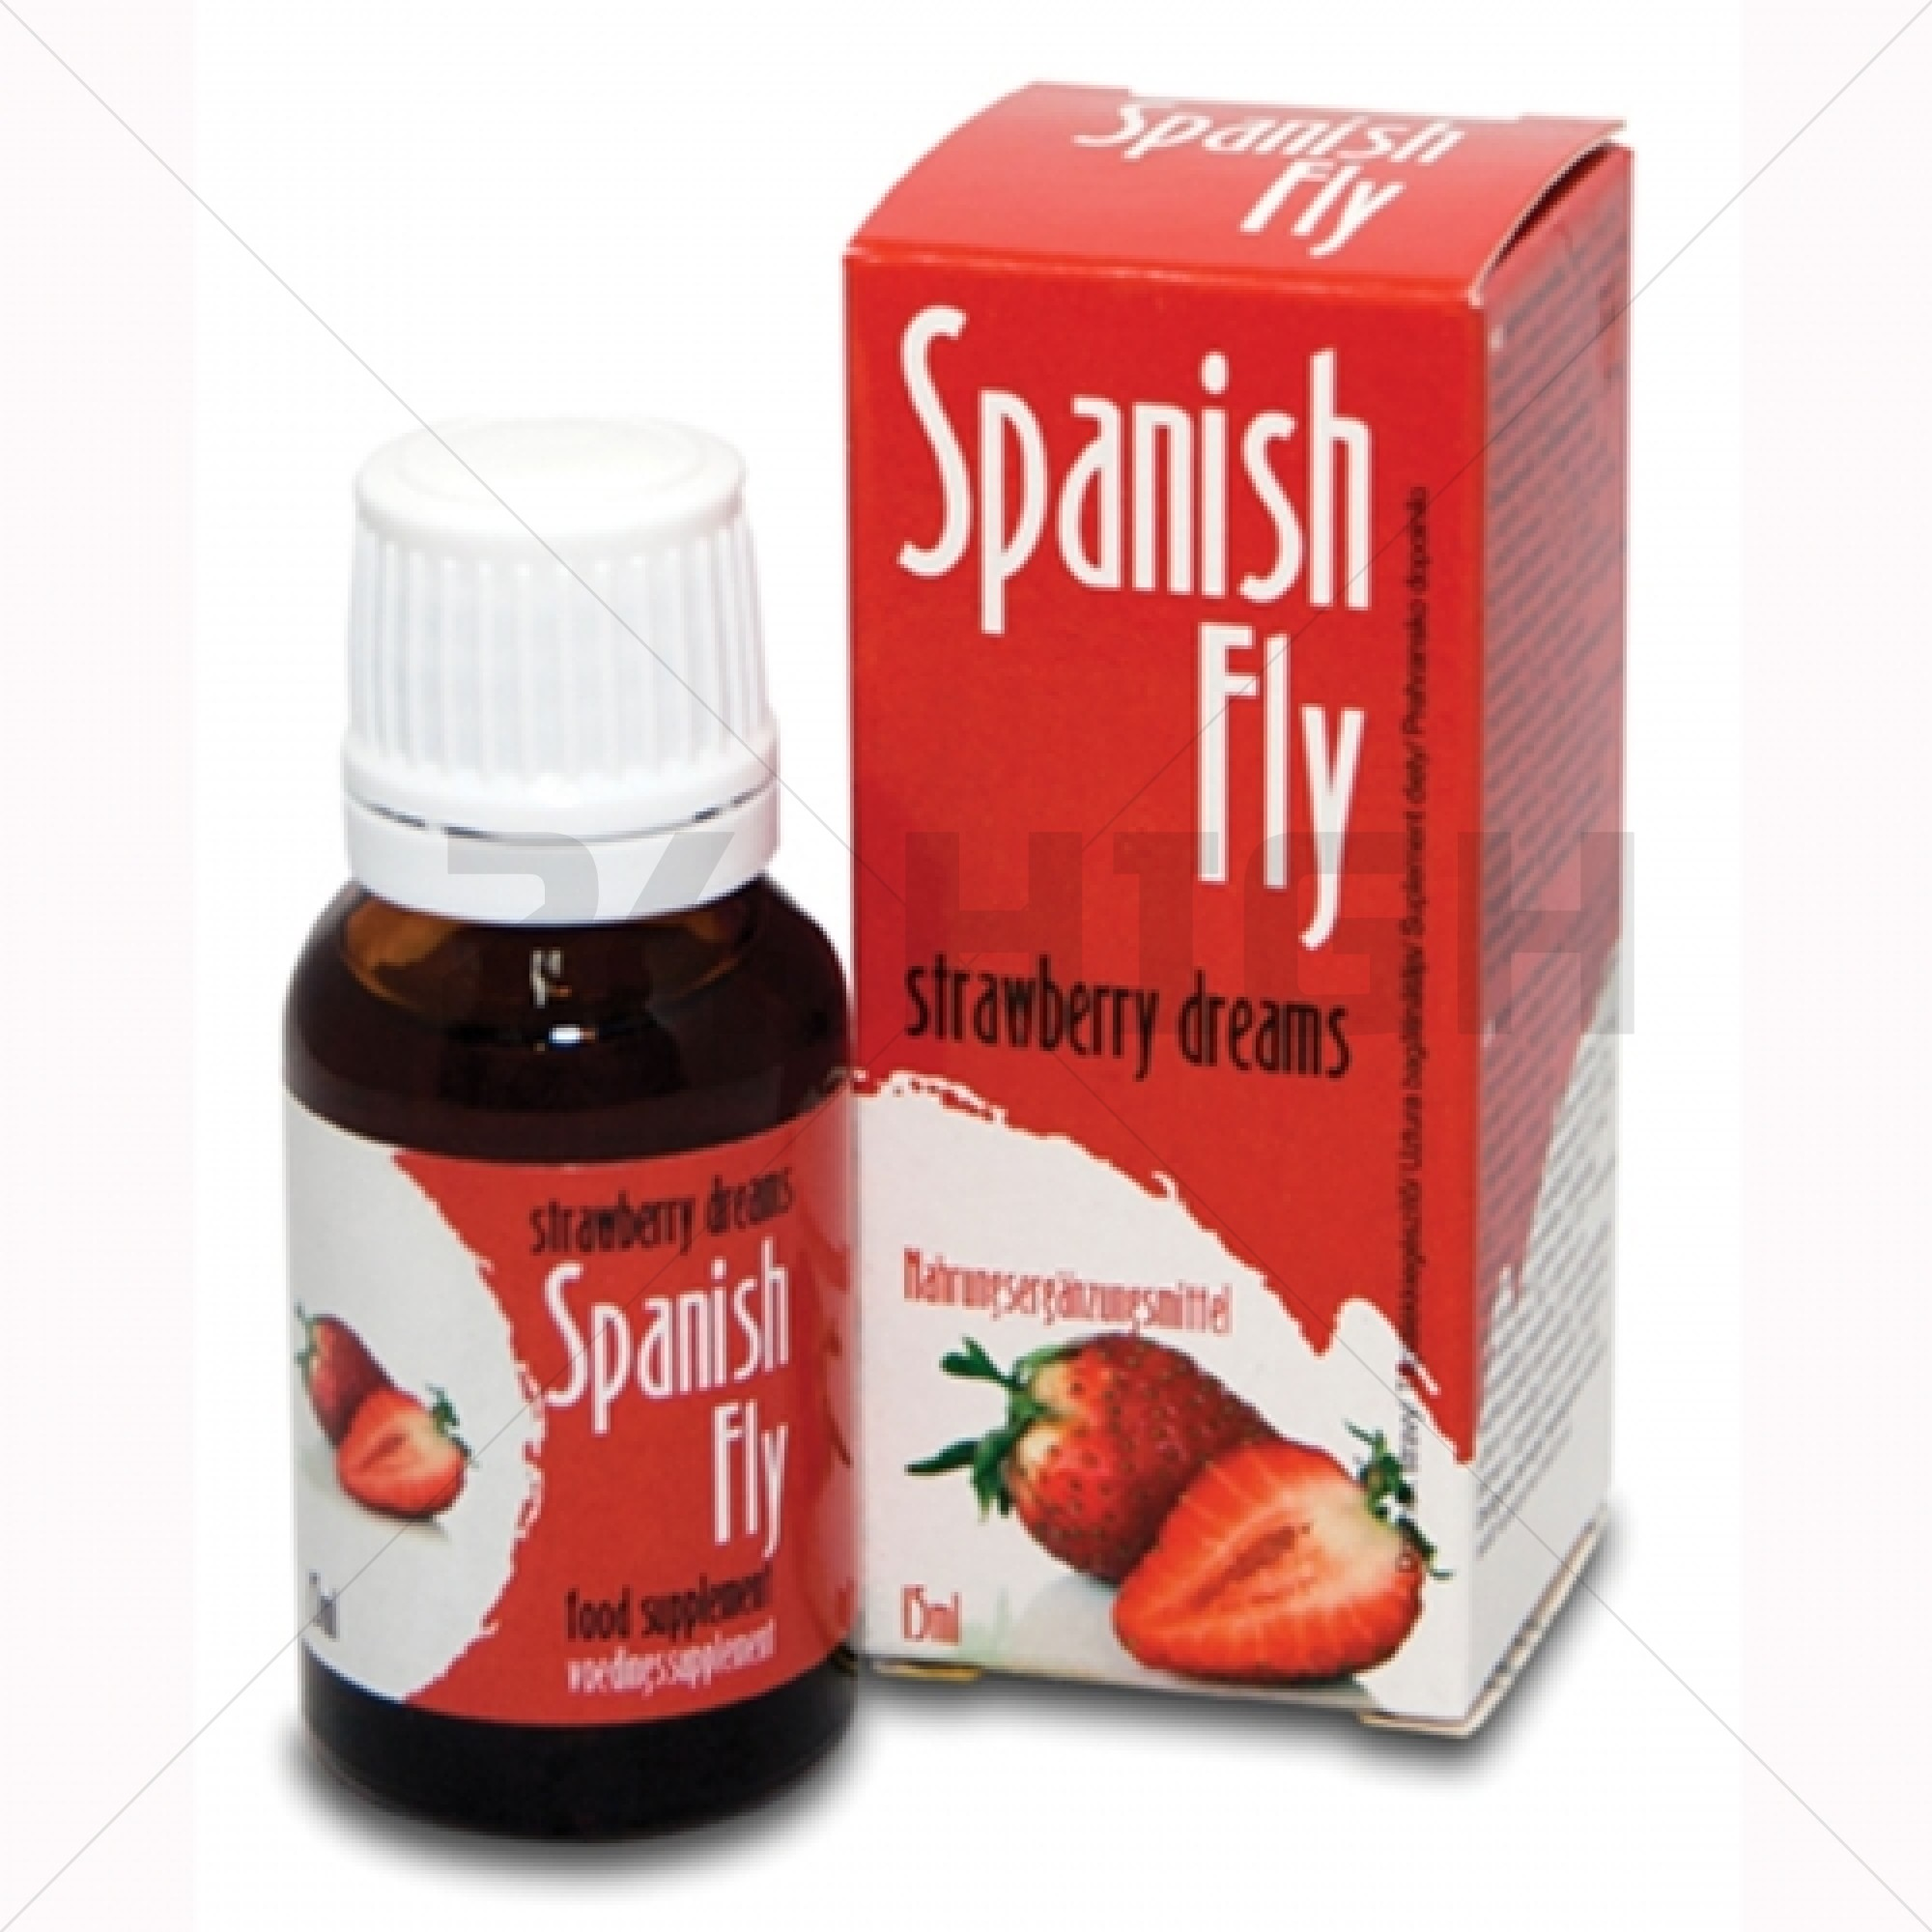 Spanish Fly Strawberry Dreams - 15 ml